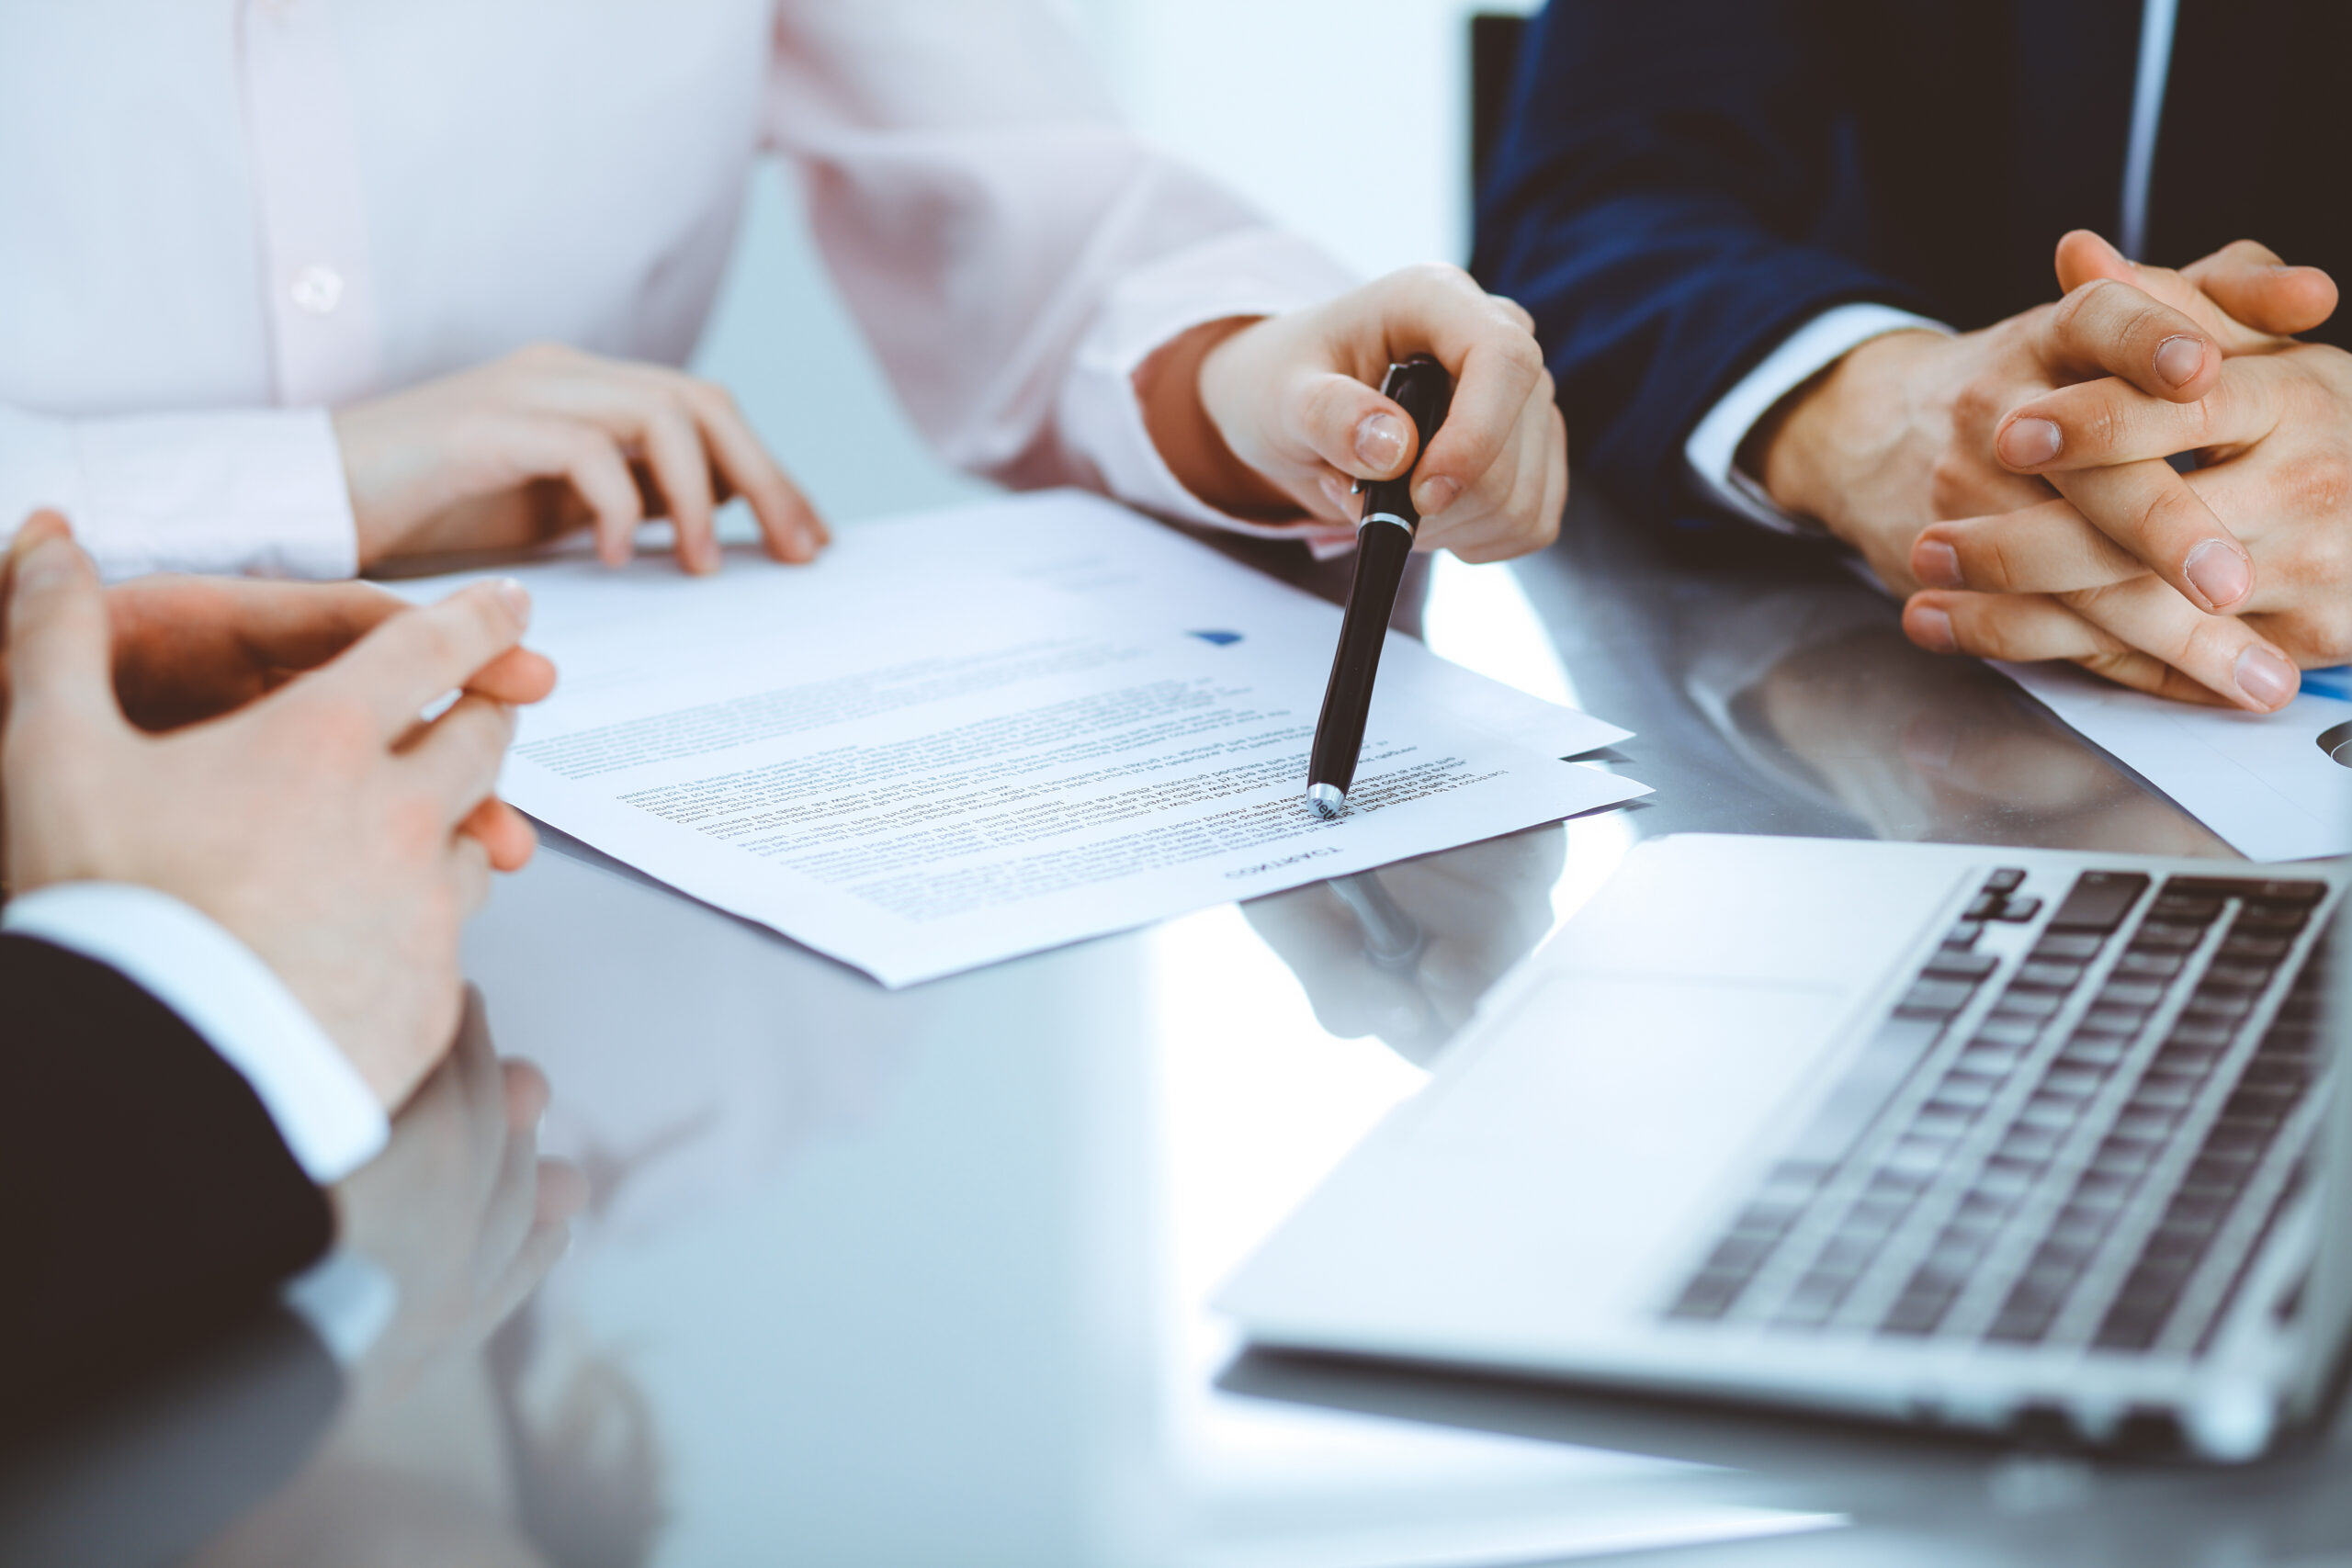 Group of business professionals examining report